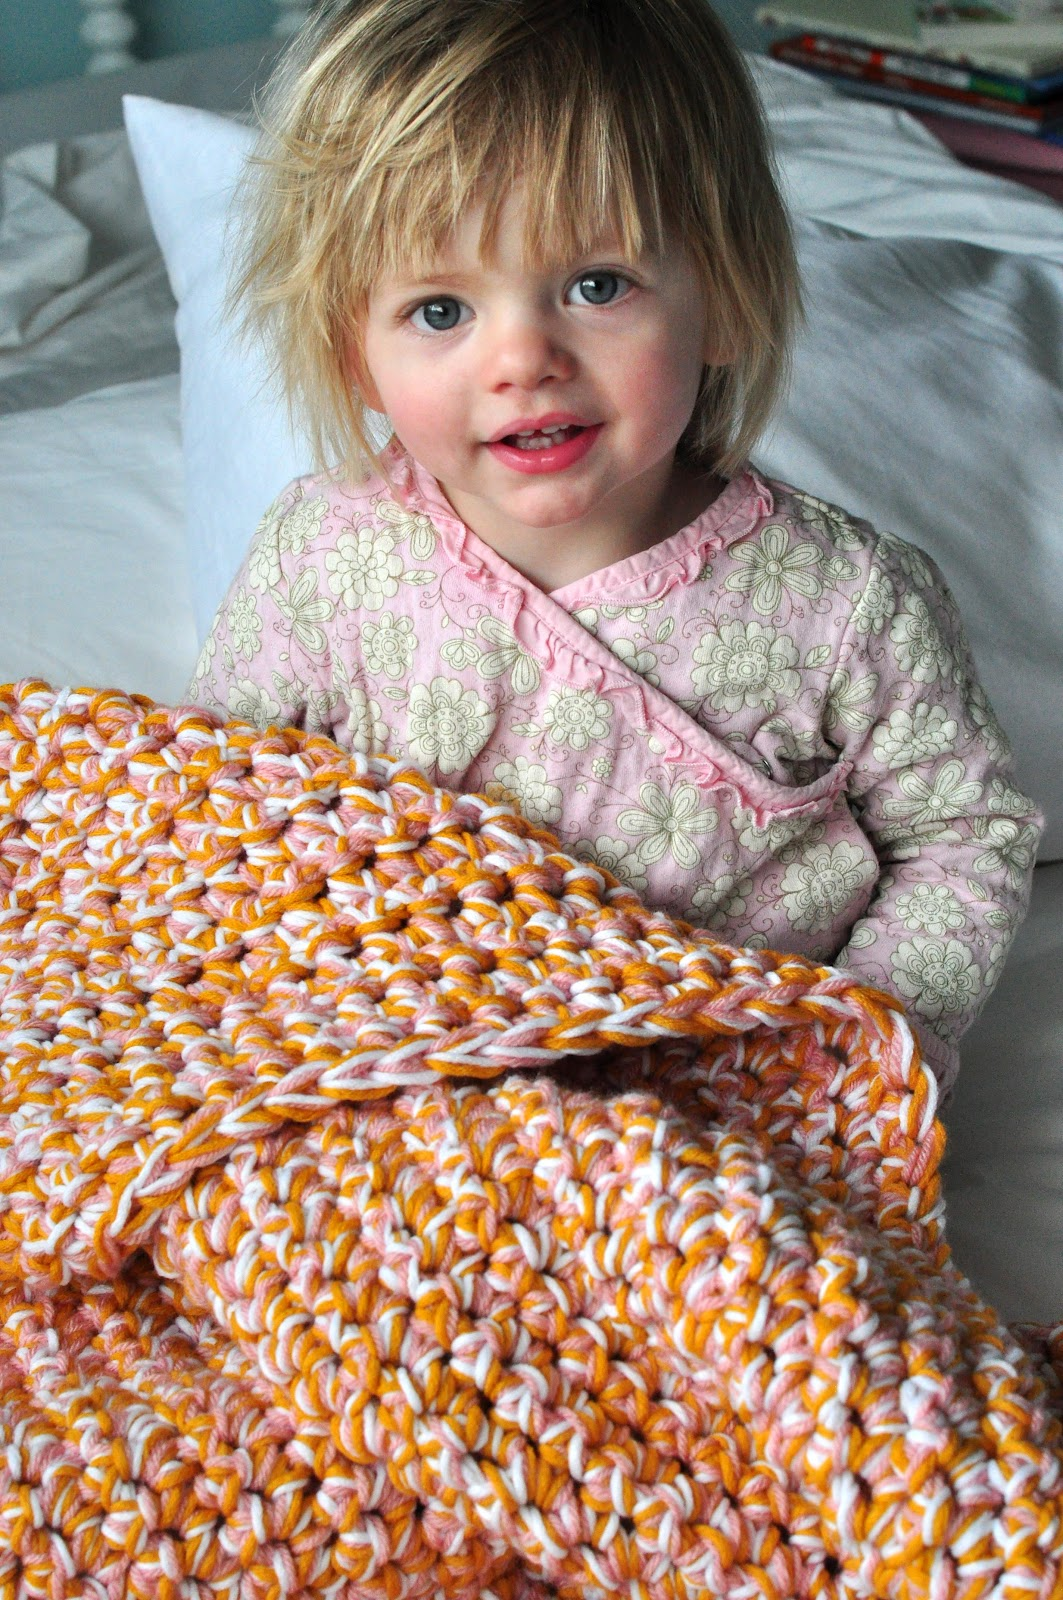 easy baby These crochet baby booties are just too cute learn how to crochet baby booties and baby sandals with these free patterns find crochet baby booties tutorials, baby shoes patterns, and other adorable ideas here.